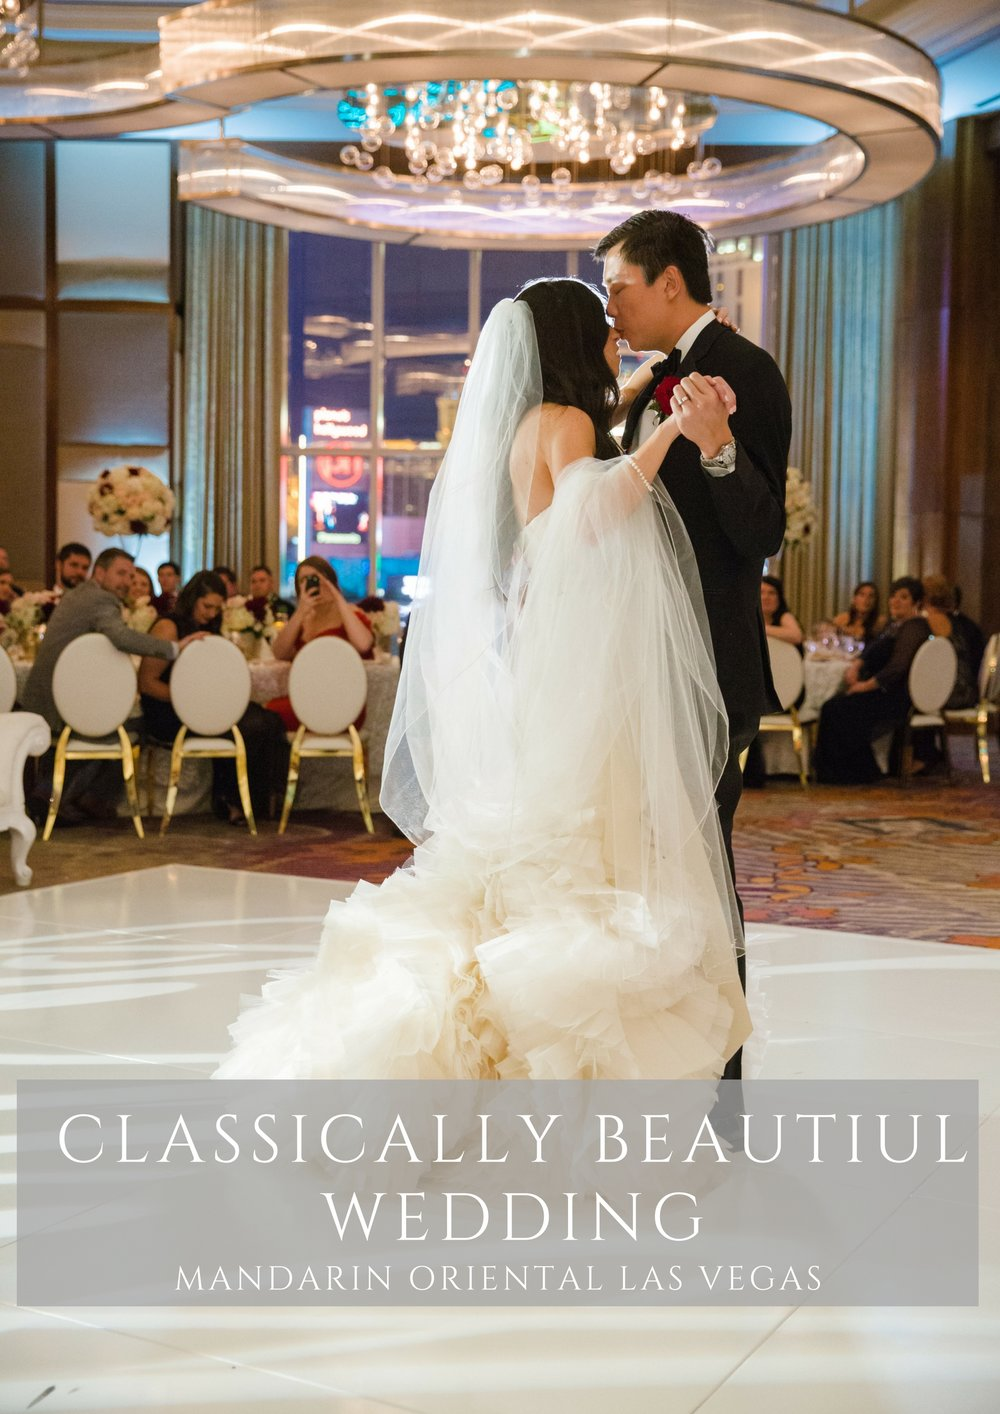 Classically beautiful wedding by Las Vegas Wedding Planner Andrea Eppolito.  Photos by Stephen Salazar.